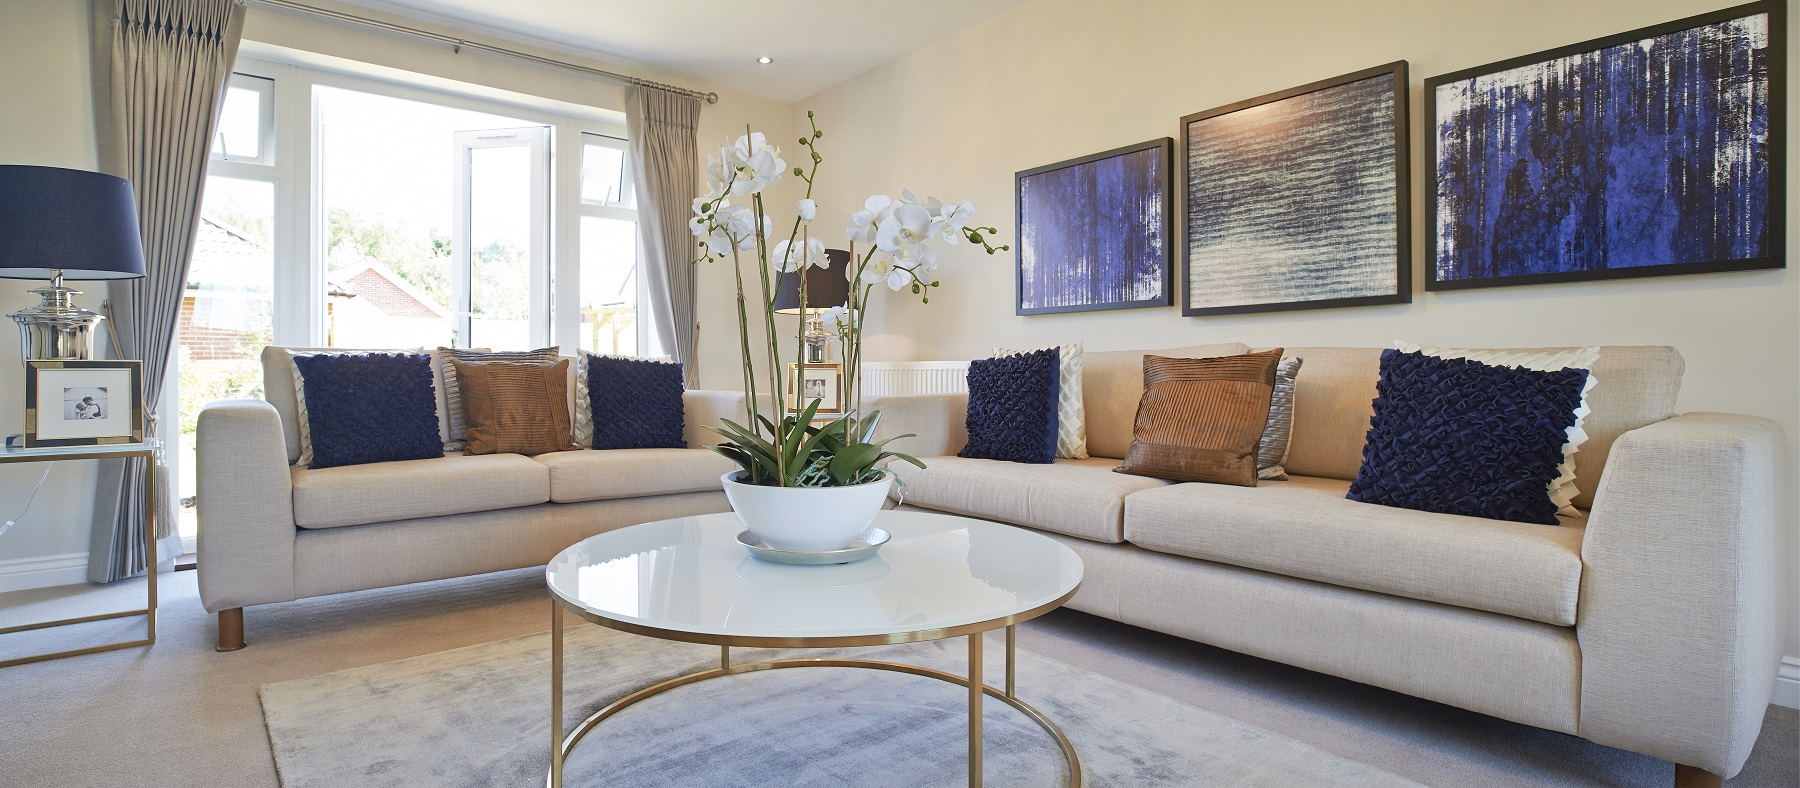 Langley Park - Eskdale - Living room2